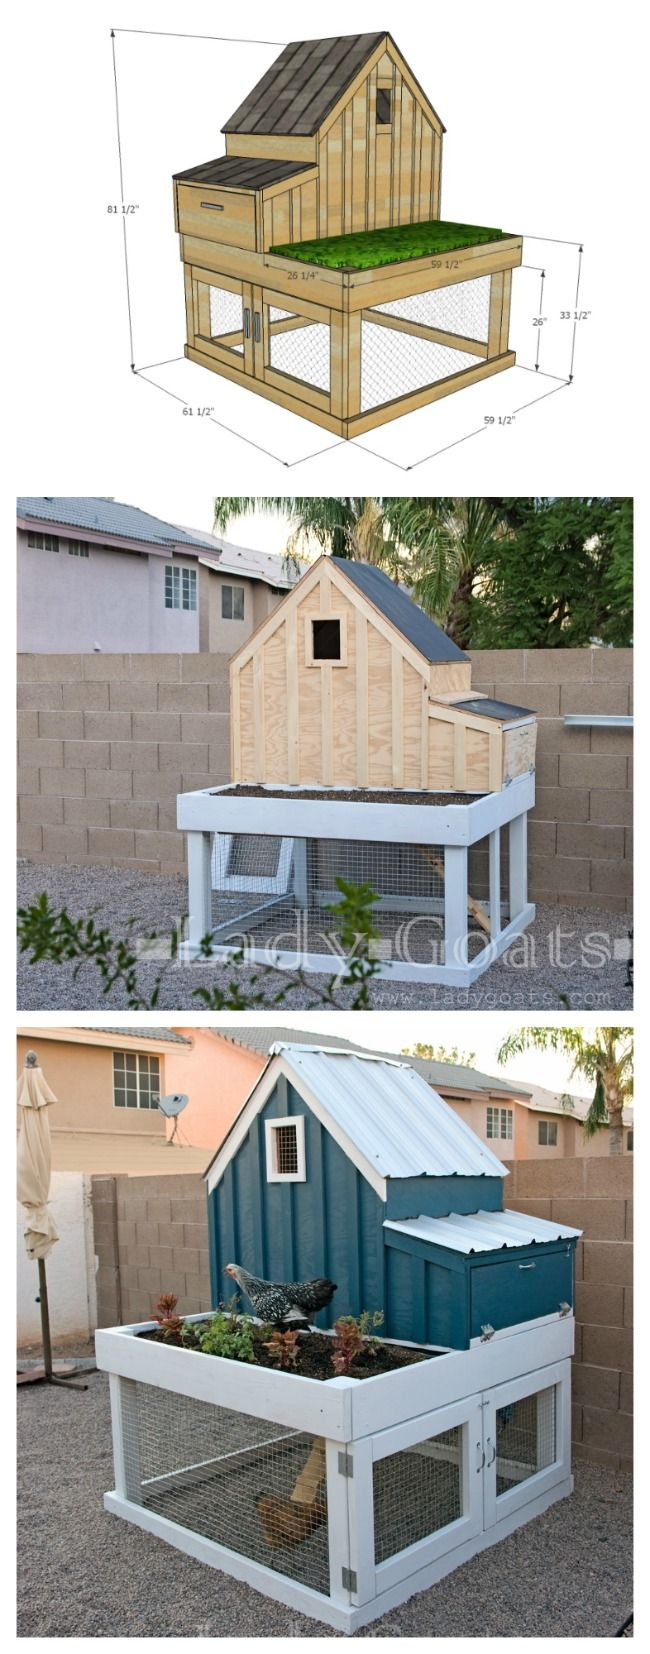 DIY: How to Build a Small Chicken Coop with Planter, Clean Out Tray and Nesting Box - building plans and materials list are on the post - via Ana White